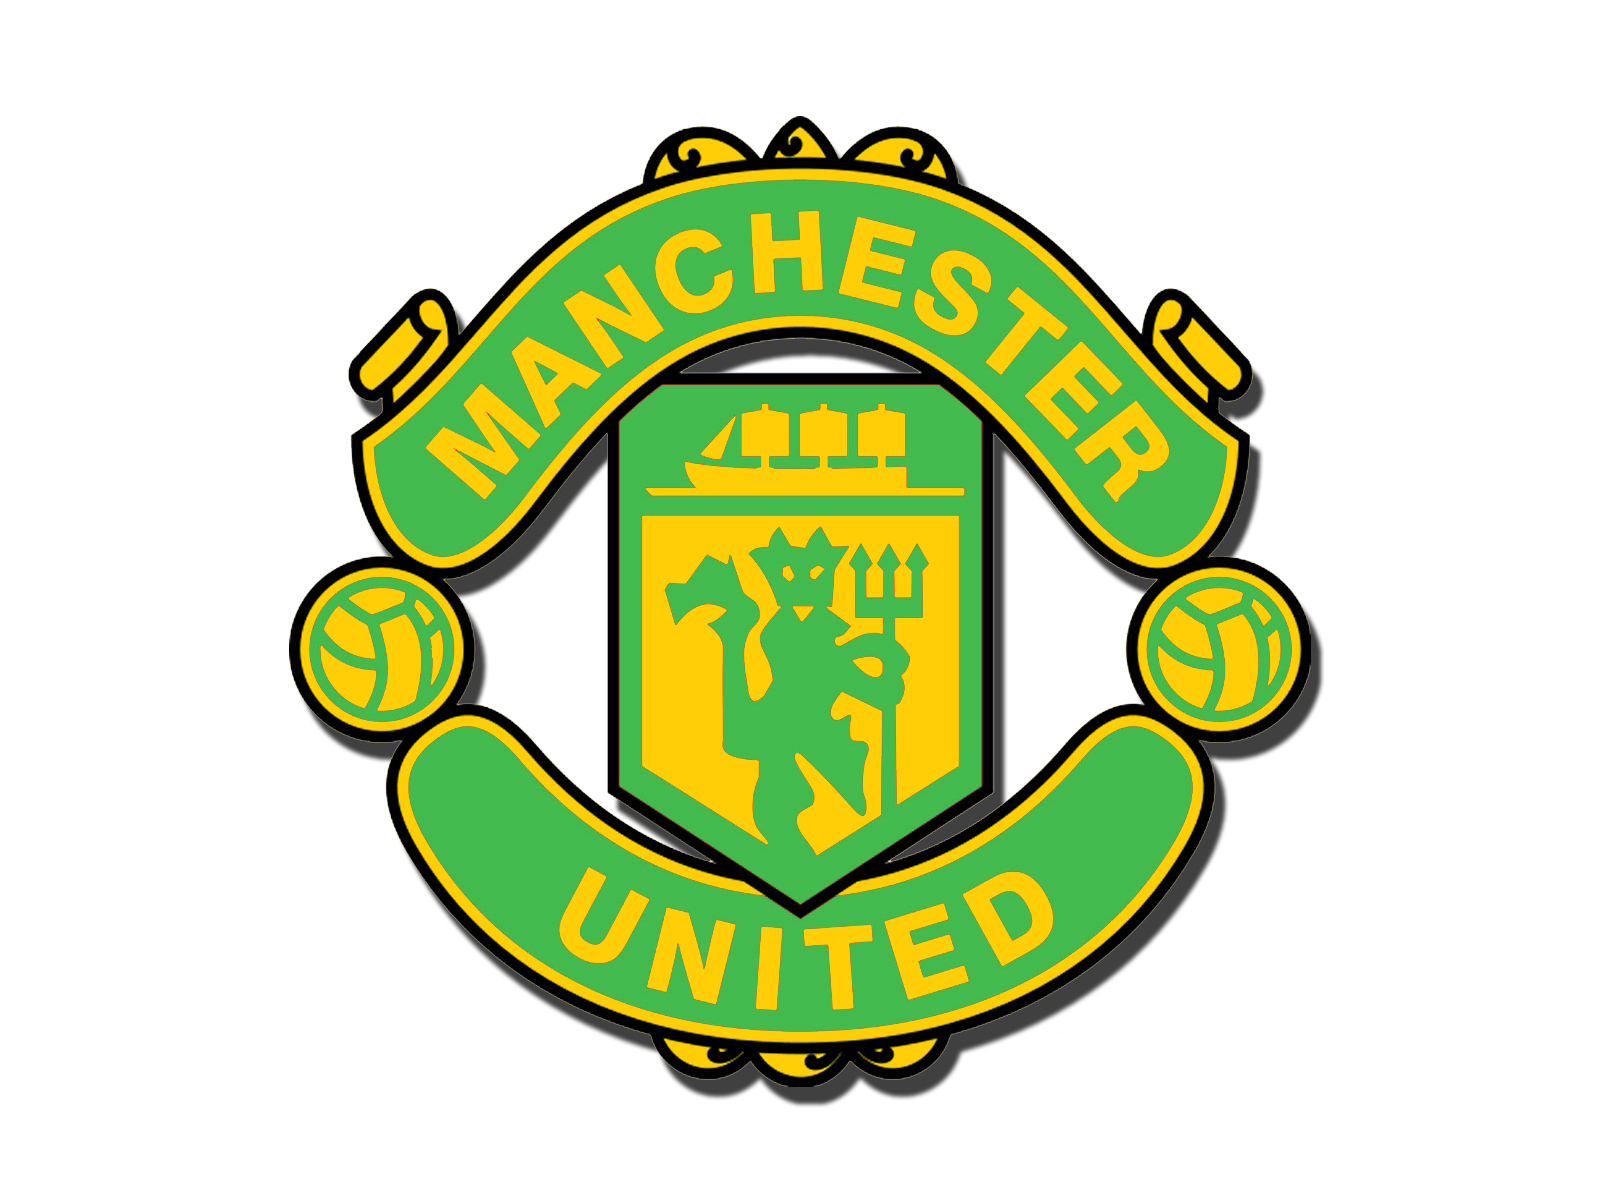 green and gold logo 1 by wulm on deviantart man utd logo 512x512 man utd logo history